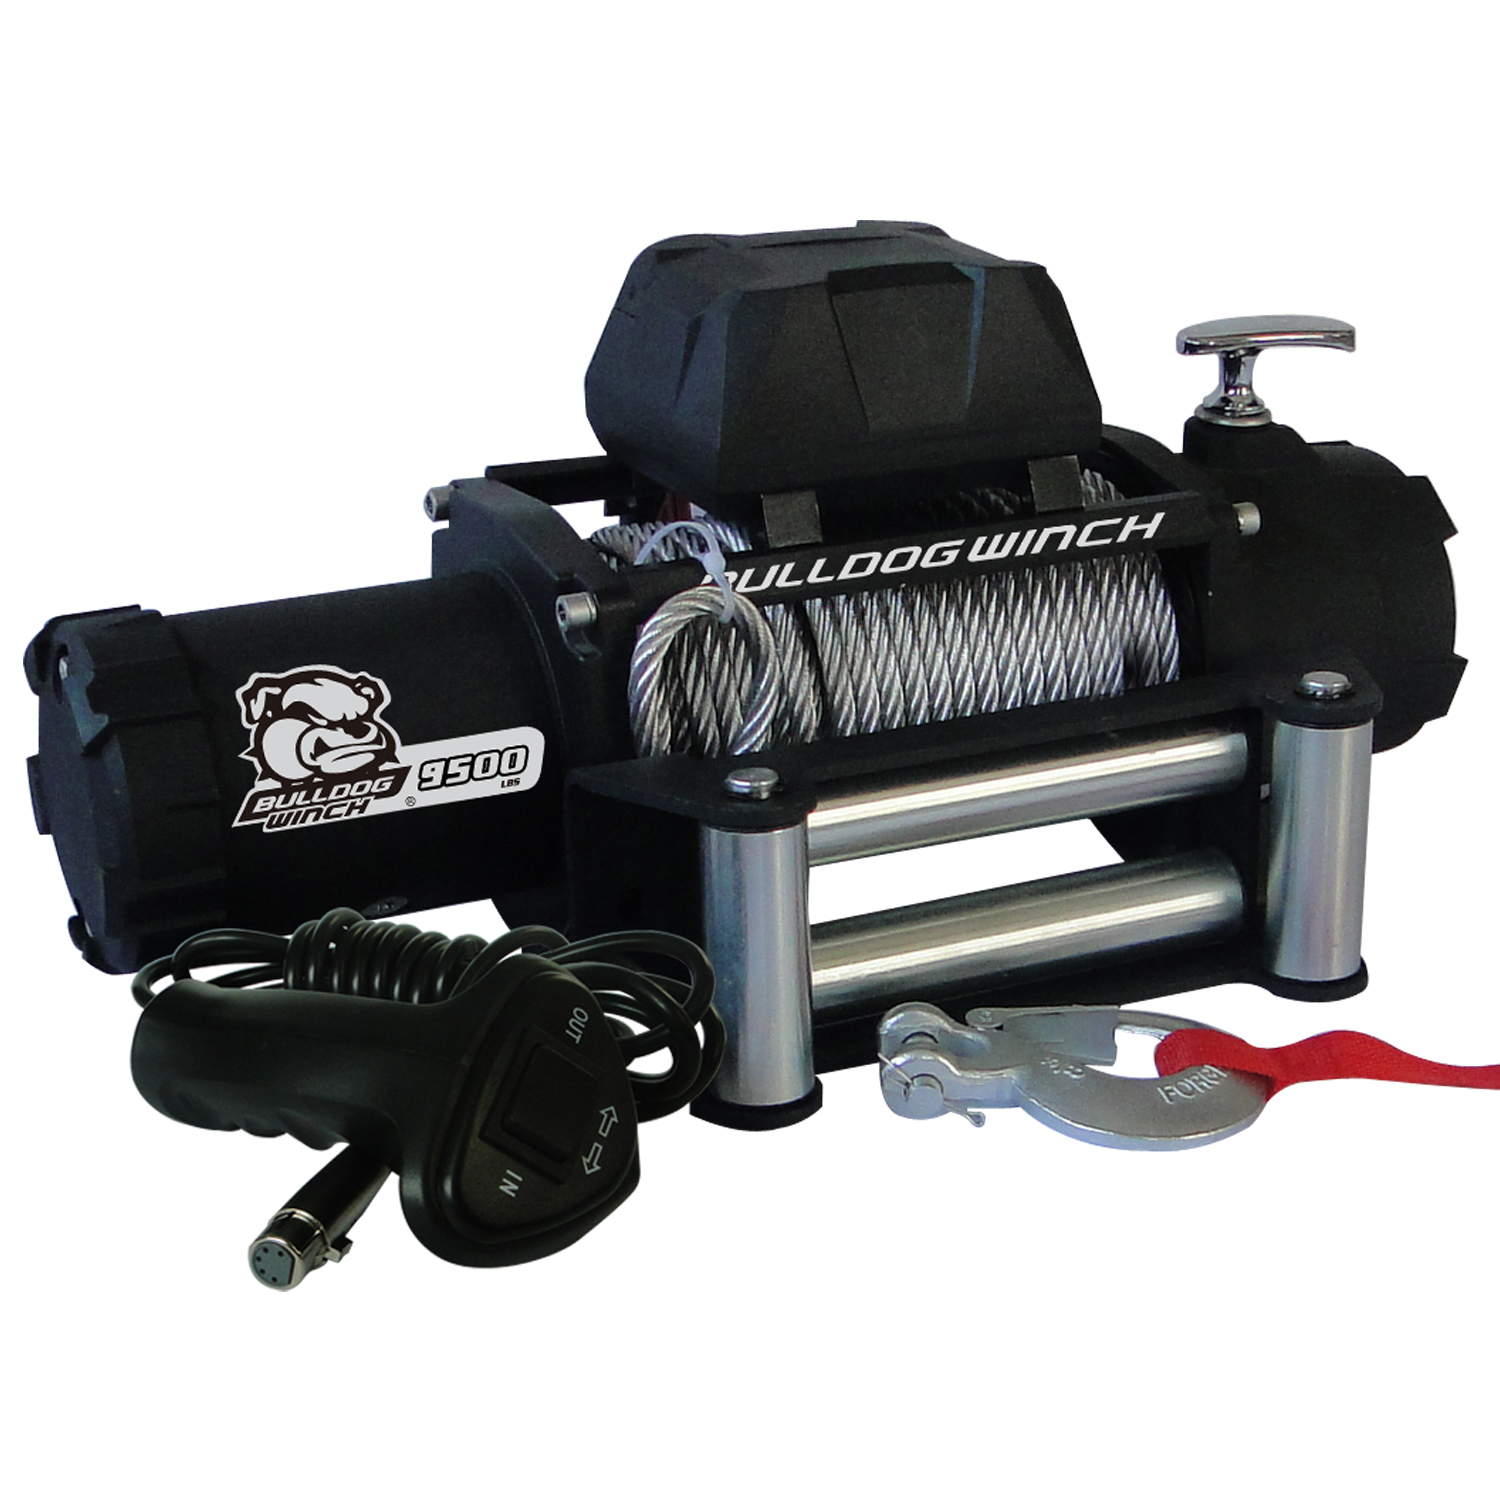 Bulldog Winch 9,500lb Winch w/ Wire Rope